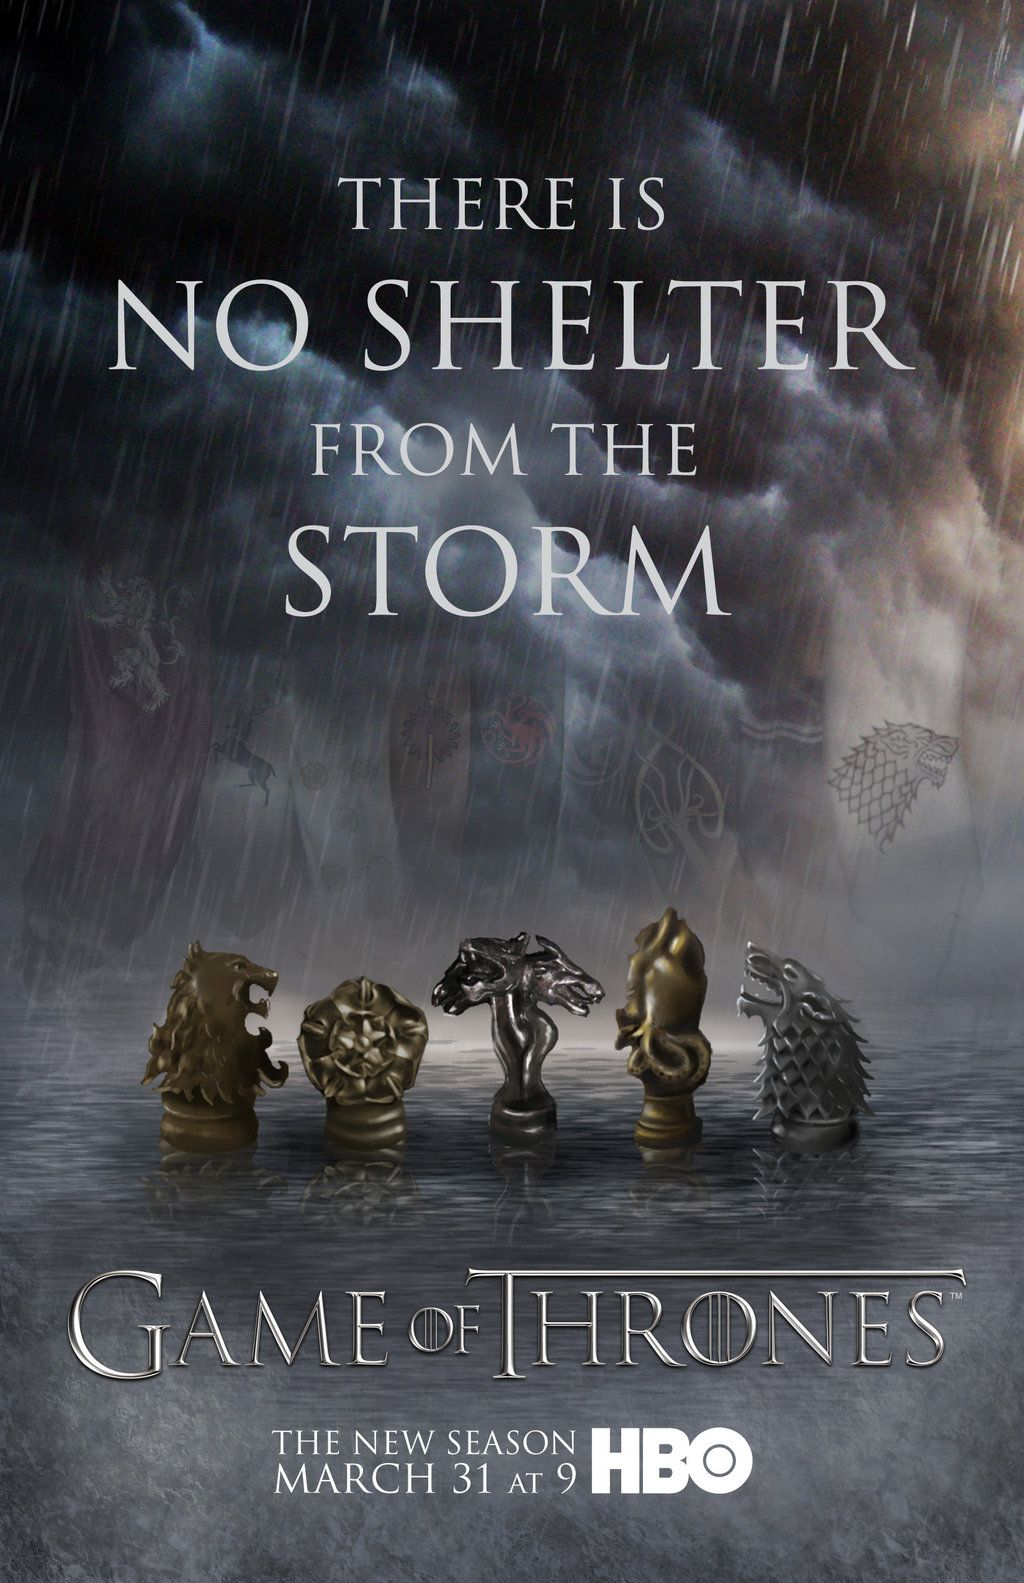 game of thrones poster high quality HD printable wallpapers season 4 no shelter form storm